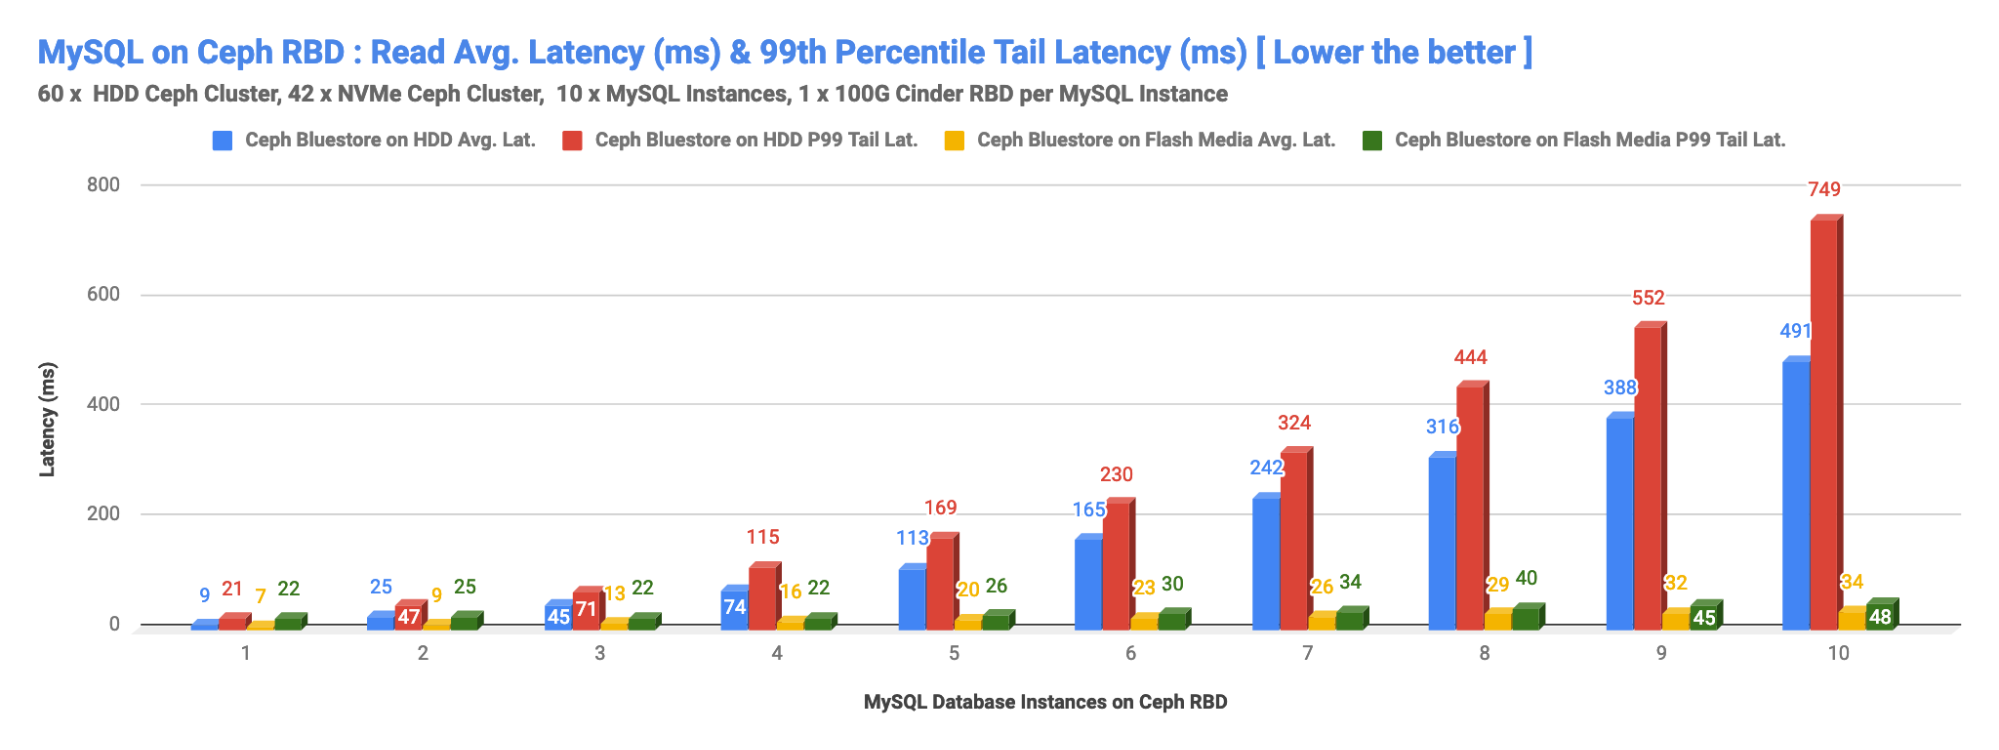 MySQL on Ceph RBD: Write Avg. Latency (ms) & 99th Percentile Tail Latency (Lower the Better)